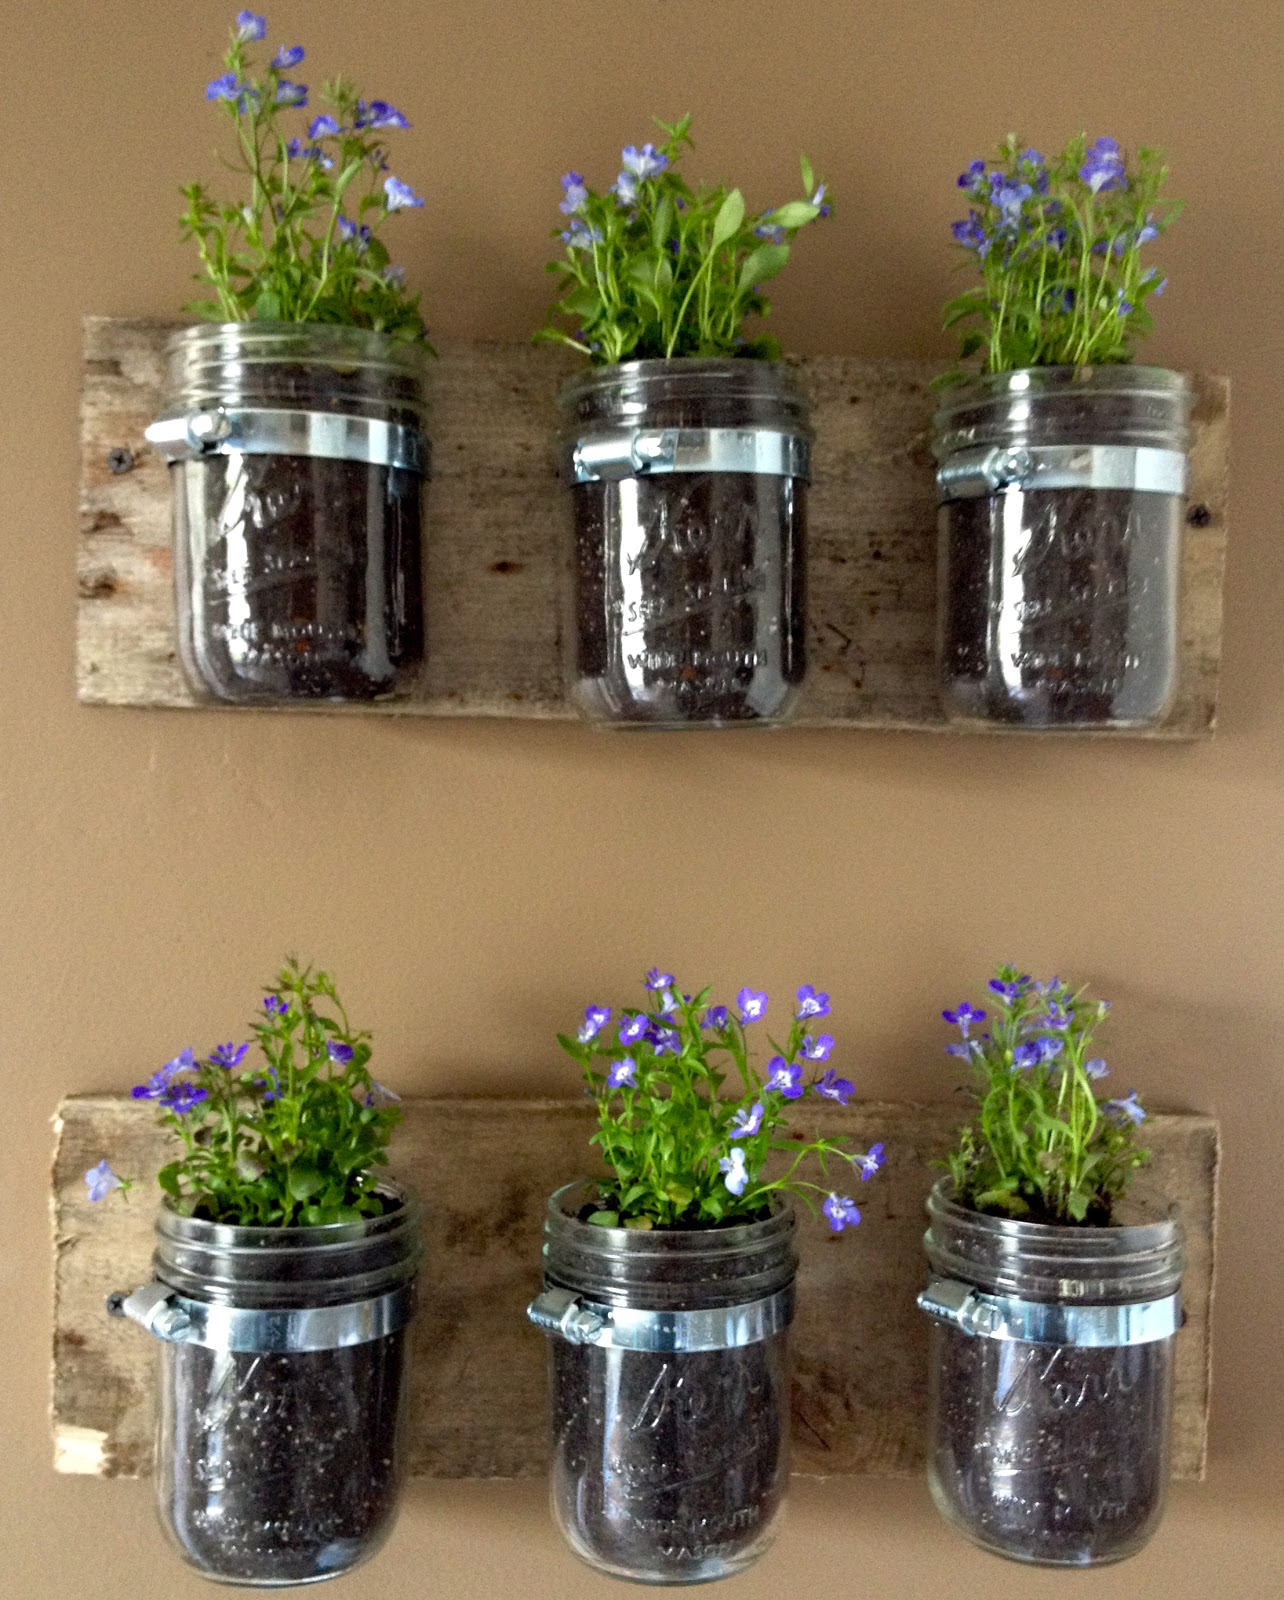 Hanging Indoor Herb Garden Diy Hanging Wall Planters From Mason Jars Kasey Trenum